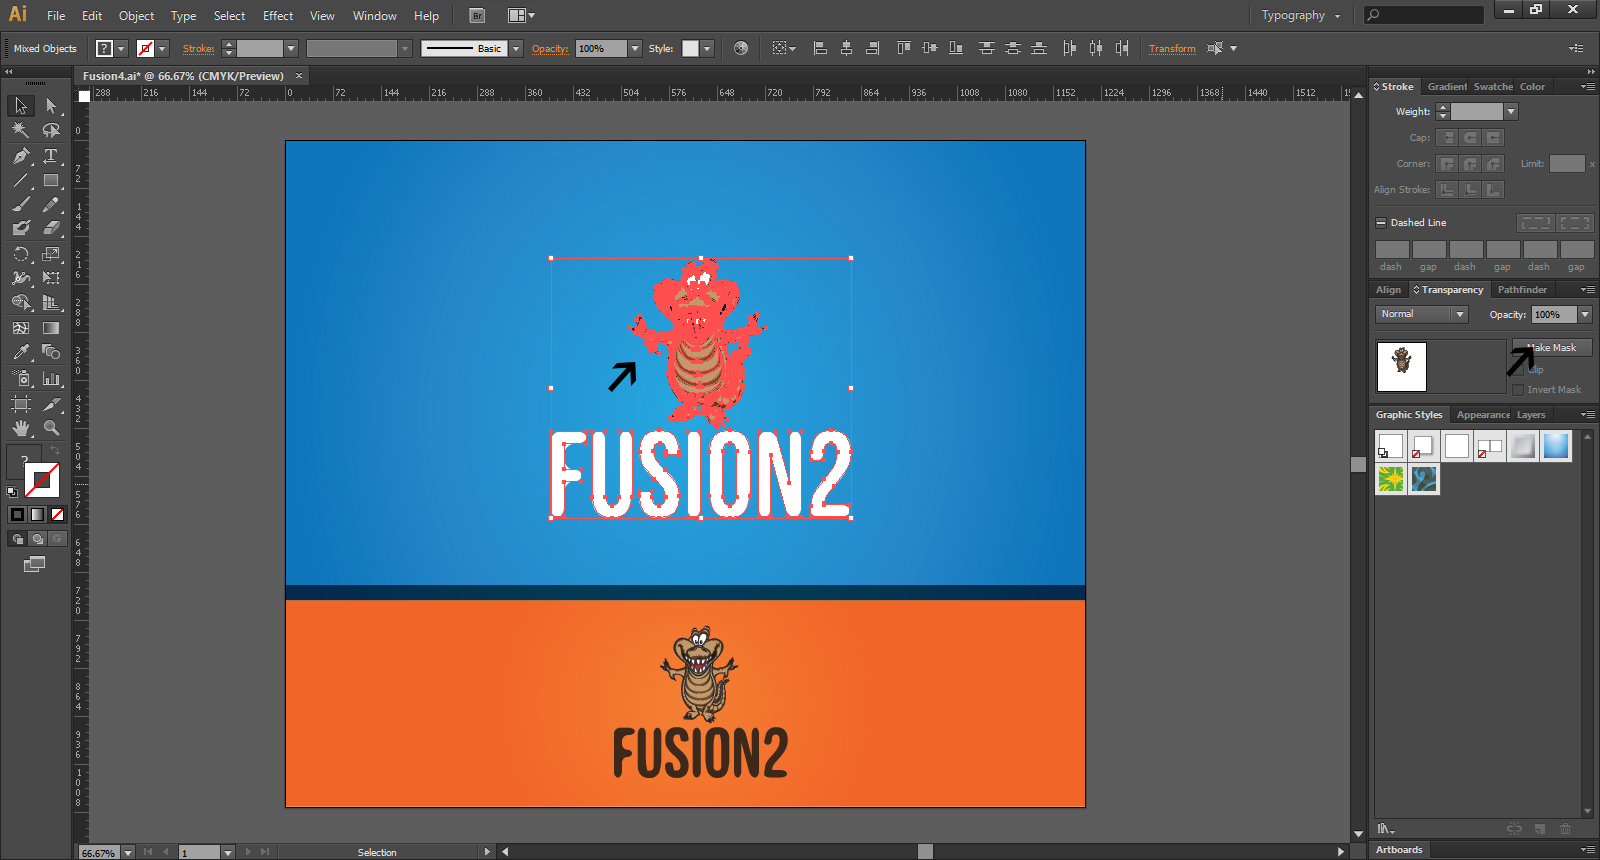 Graphic Design Skills - Fusion2